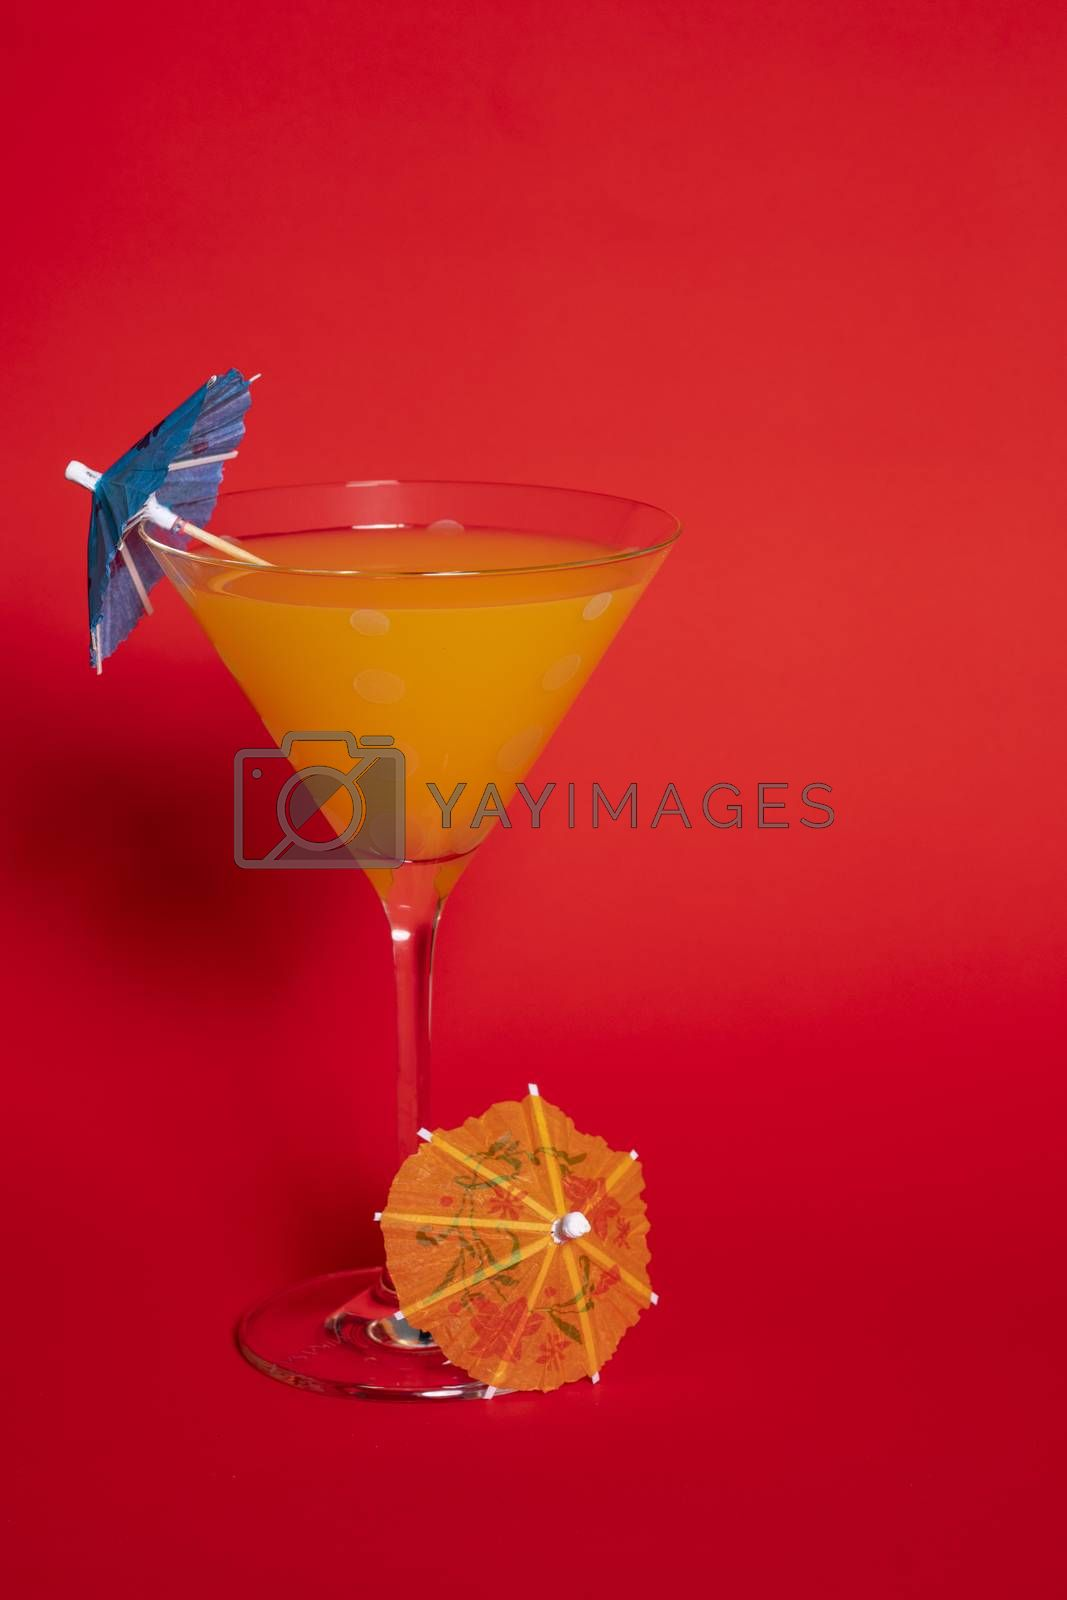 Orange Drink in Martini Glass Against Red by Charlie Floyd